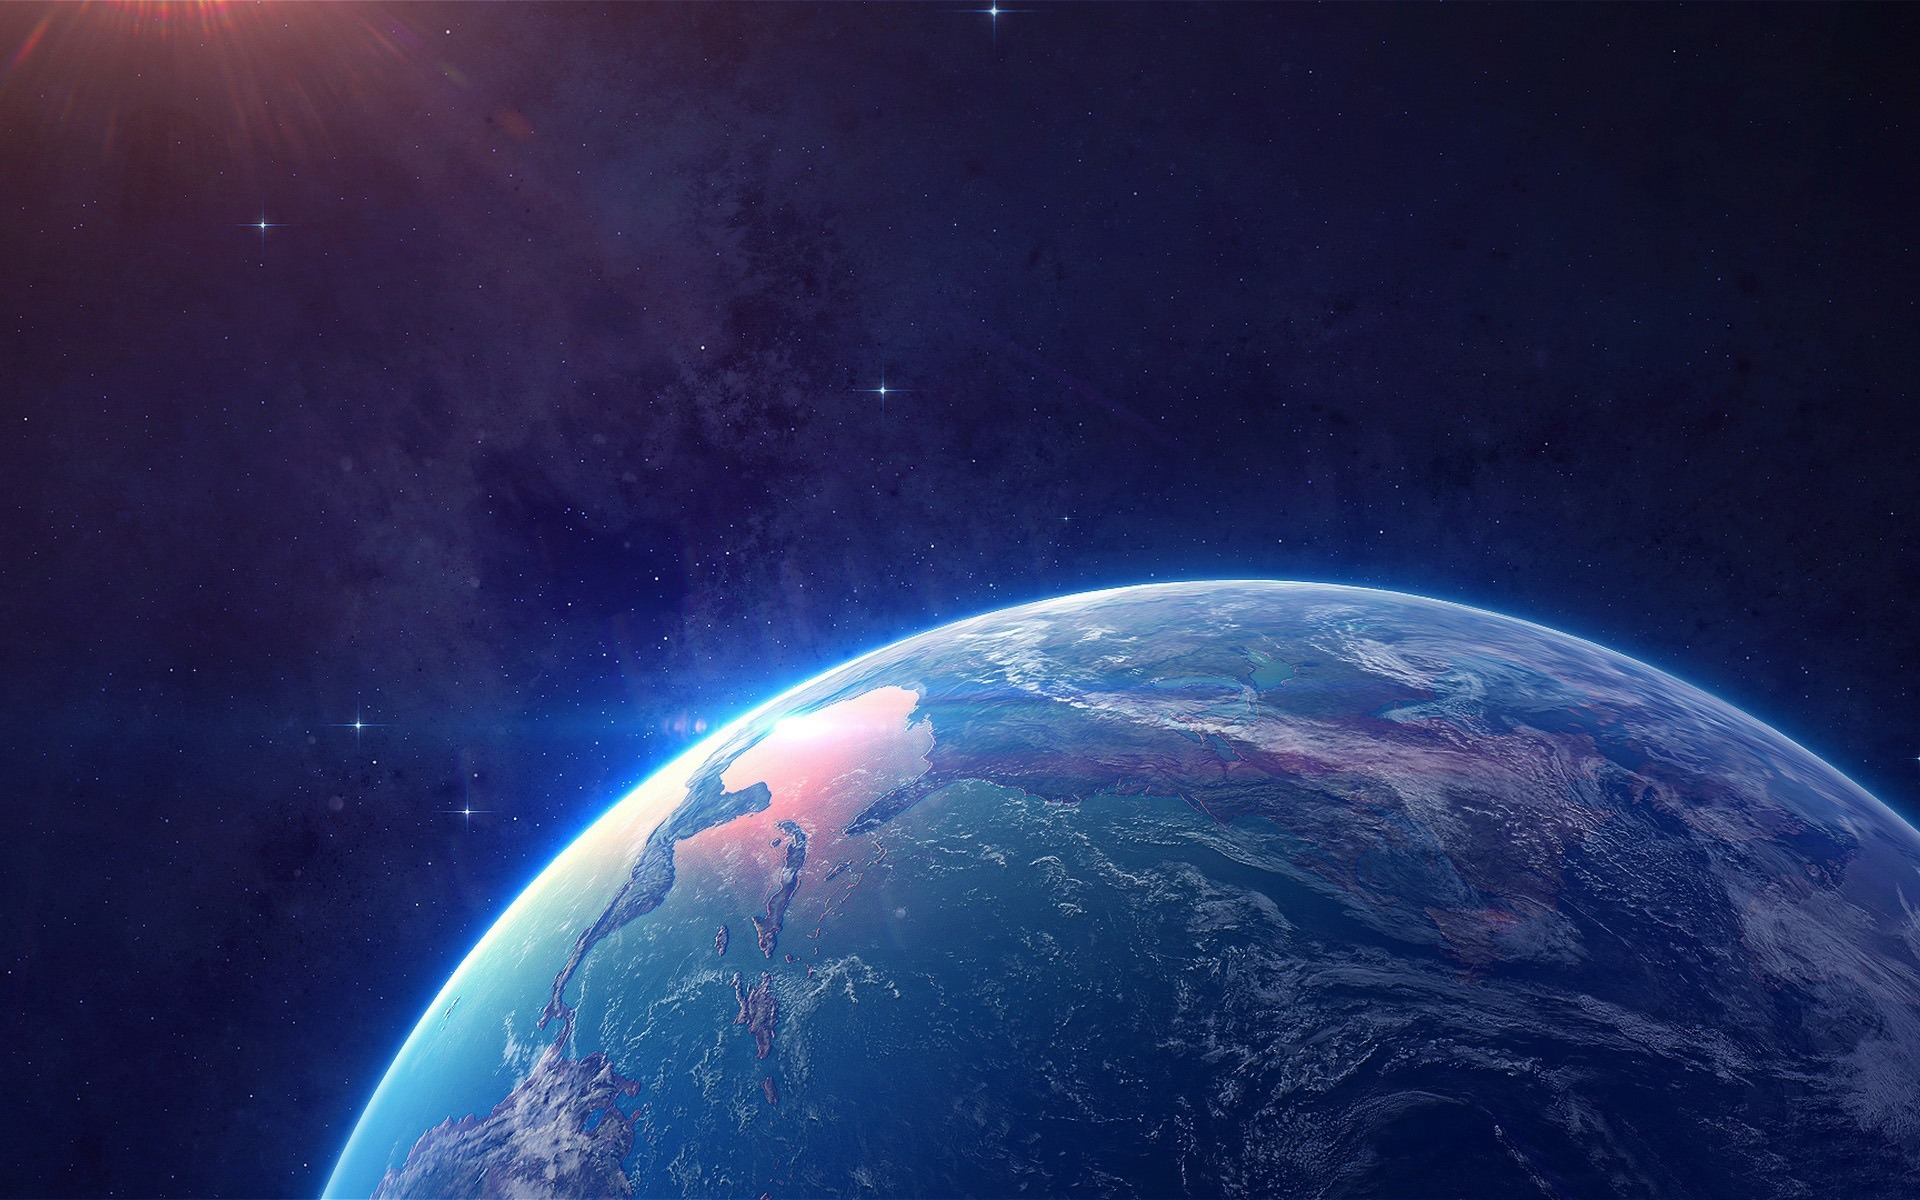 planet earth from space - HD1920×1200